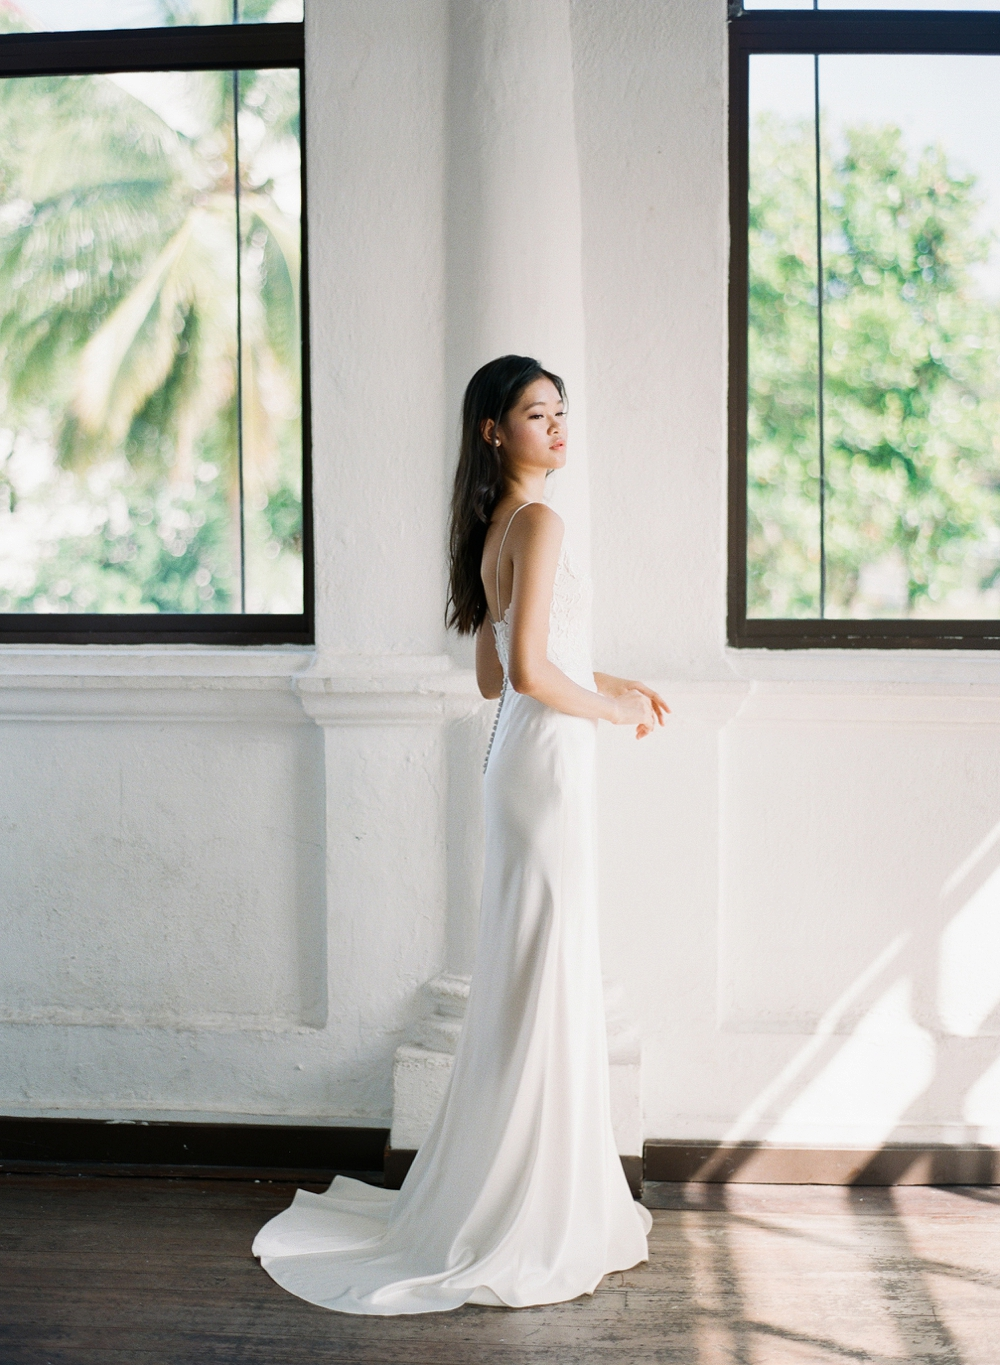 51Jasmine Inspired Bridal Editorial.jpg